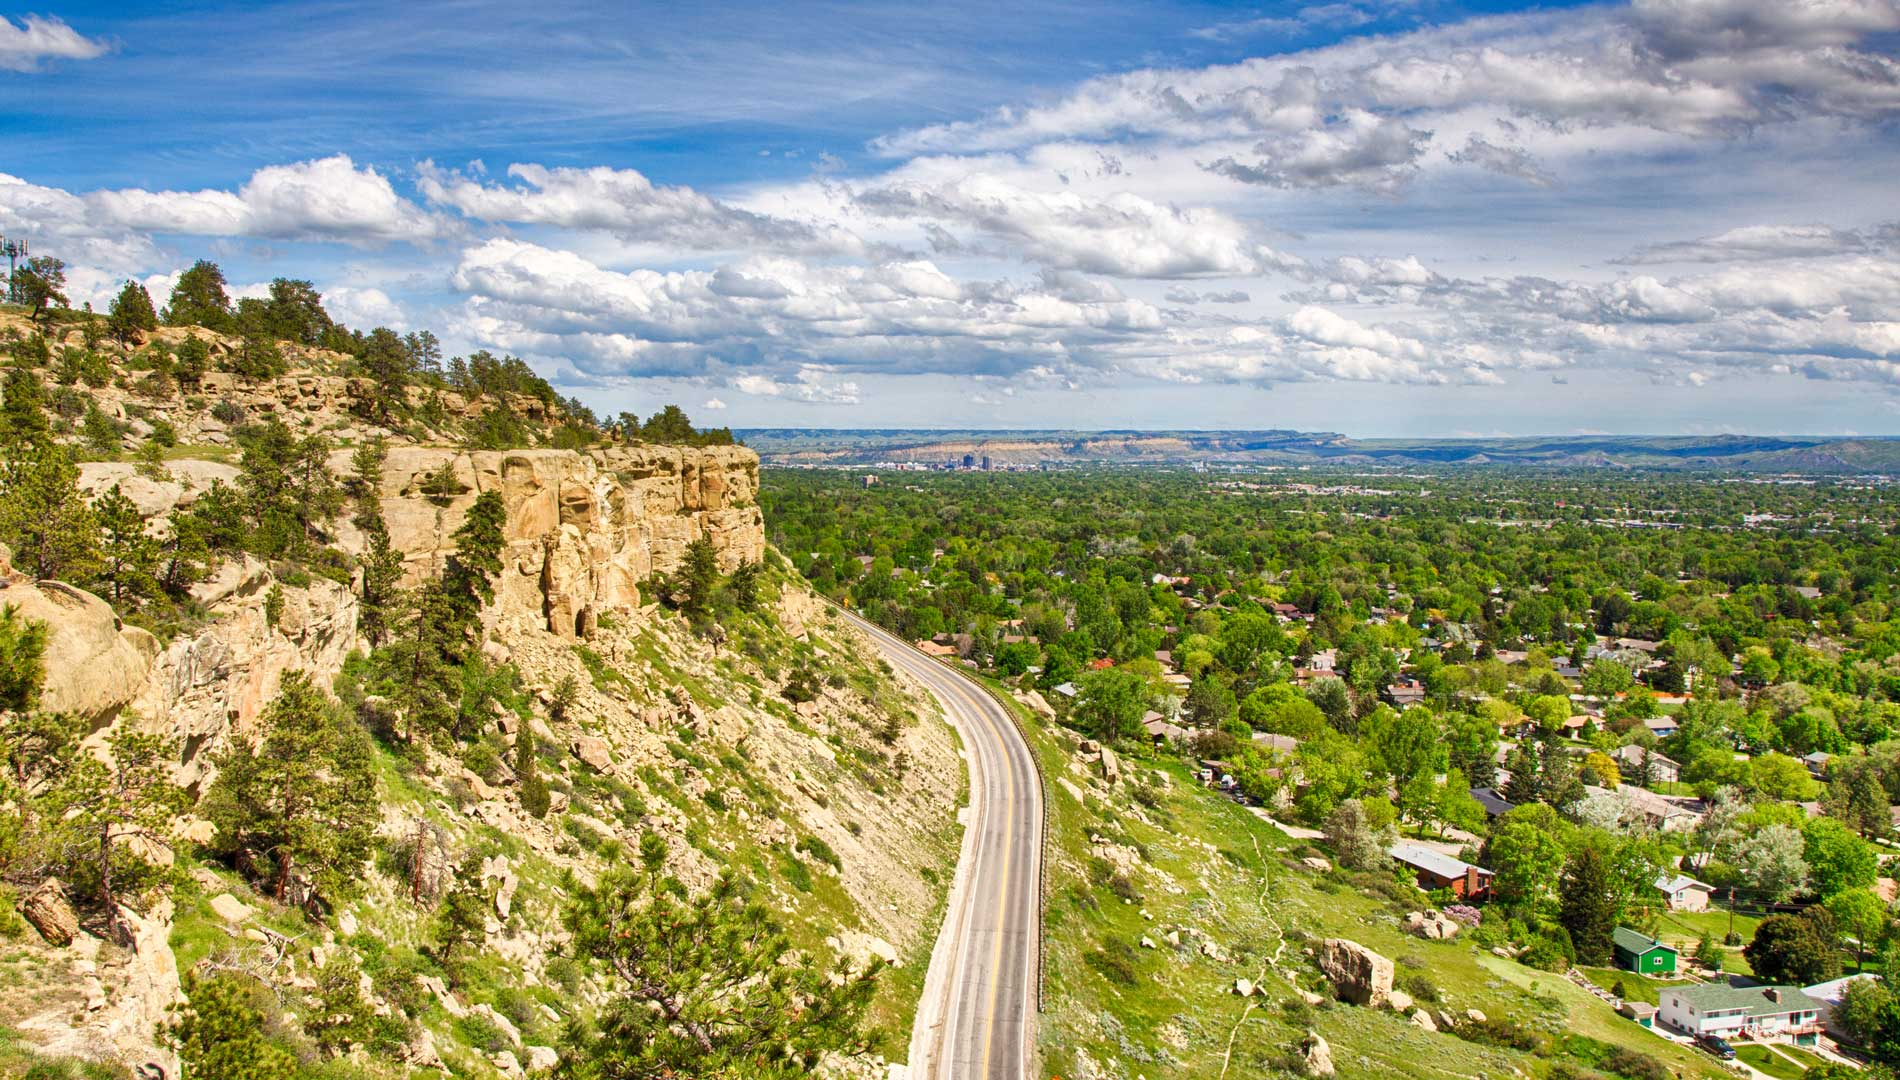 Road to recycling plant in Billings, Montana